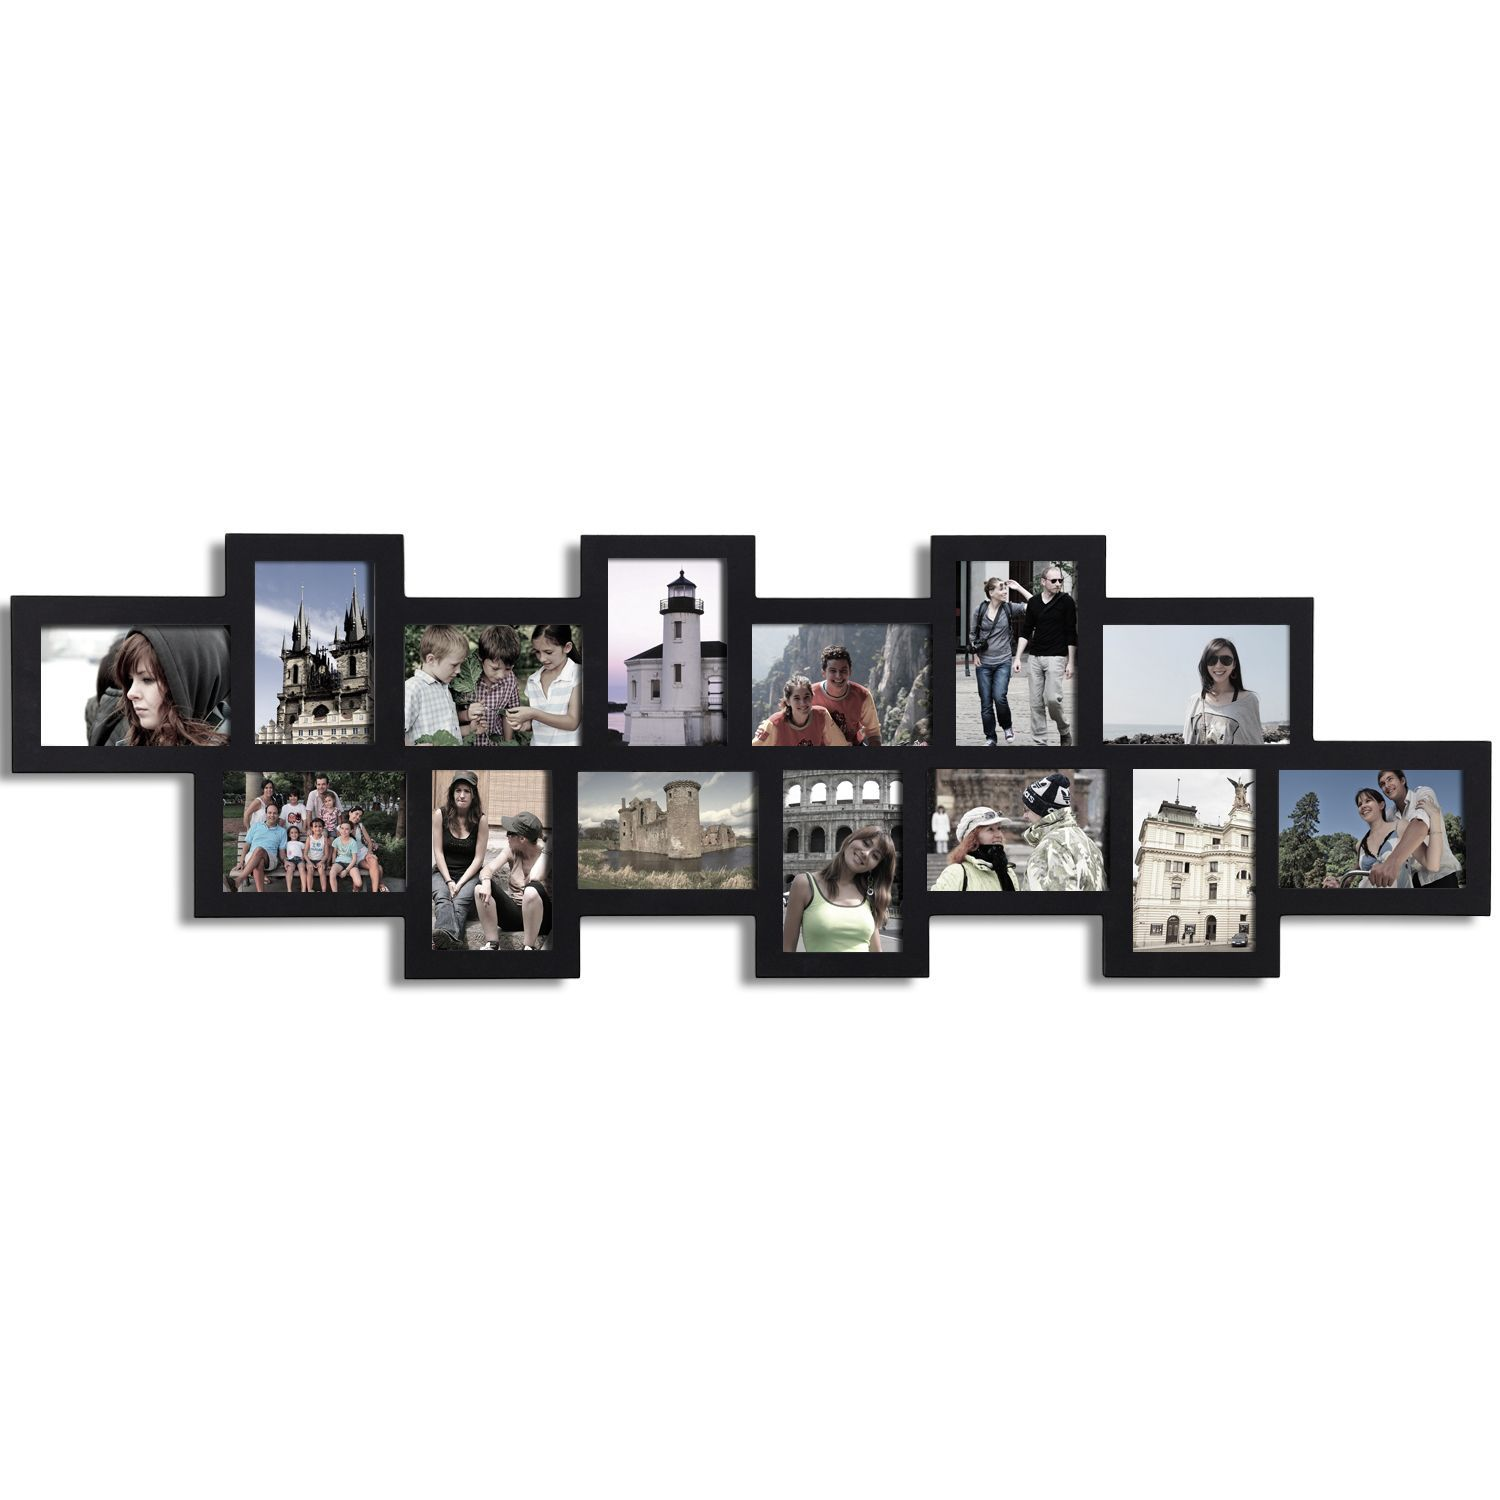 This huddle multi photo wall frame holds 14 photos in all made this huddle multi photo wall frame holds 14 photos in all made jeuxipadfo Images